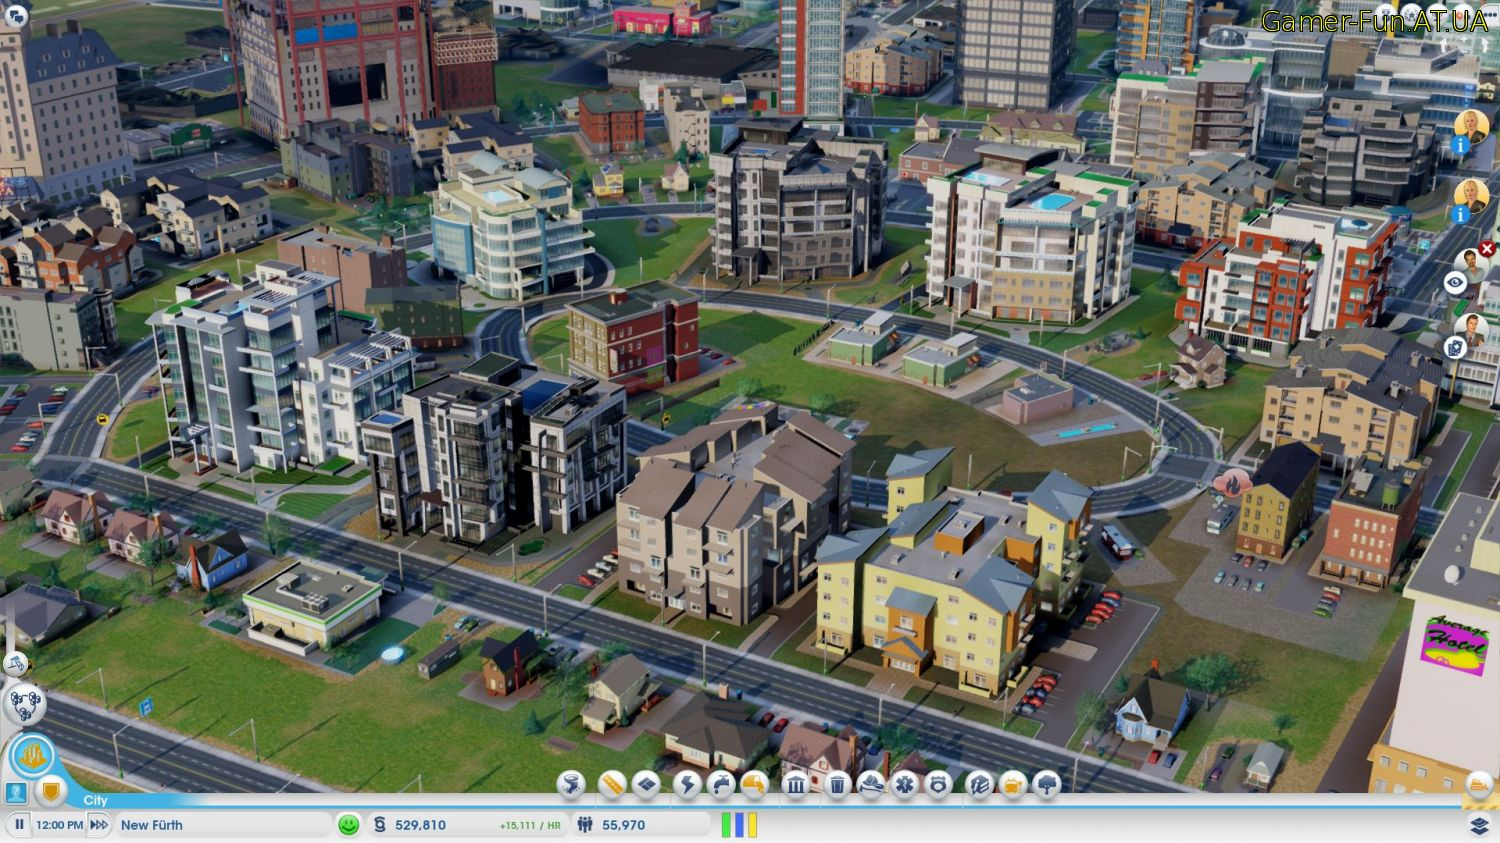 SimCity: Cities of Tomorrow (2014) Русская версия [RePack], скриншоты SimCity: Cities of Tomorrow (2014) Русская версия [RePack], скачать SimCity: Cities of Tomorrow (2014) Русская версия [RePack], картинки SimCity: Cities of Tomorrow (2014) Русская версия [RePack], постер SimCity: Cities of Tomorrow (2014) Русская версия [RePack]